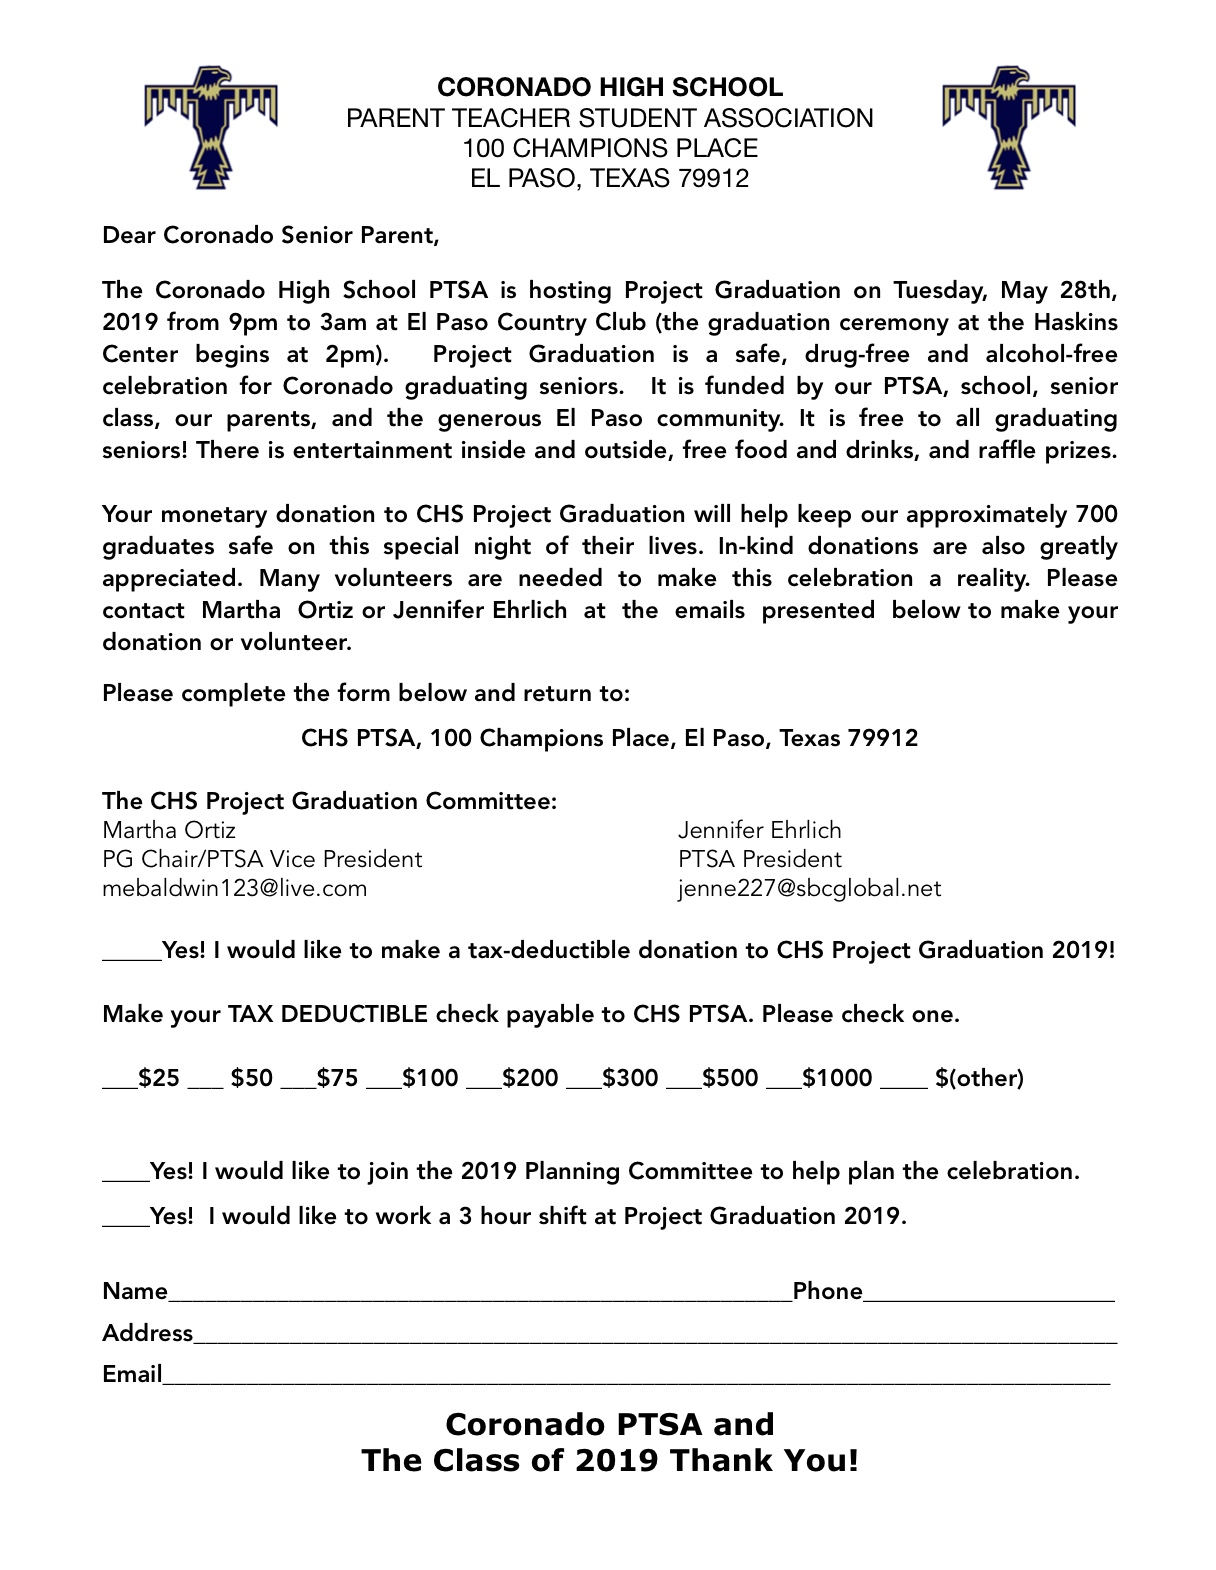 If you would like to help… - Please complete the form to the right and return it to us as soon as possible.We want them to have a night full of fun and prizes but it is dependent on the money raised. The Tier for Donors are:Diamond-$1000 and upPlatinum-$500-$999Gold-$250-$499Silver-$100-$249Bronze-$25-$99Spread the word to businesses and family members that might be interested.If you have any questions please email Martha Ortiz @ mebaldwin123@live.comThank you again!!Stay tuned for important meetings coming soon!